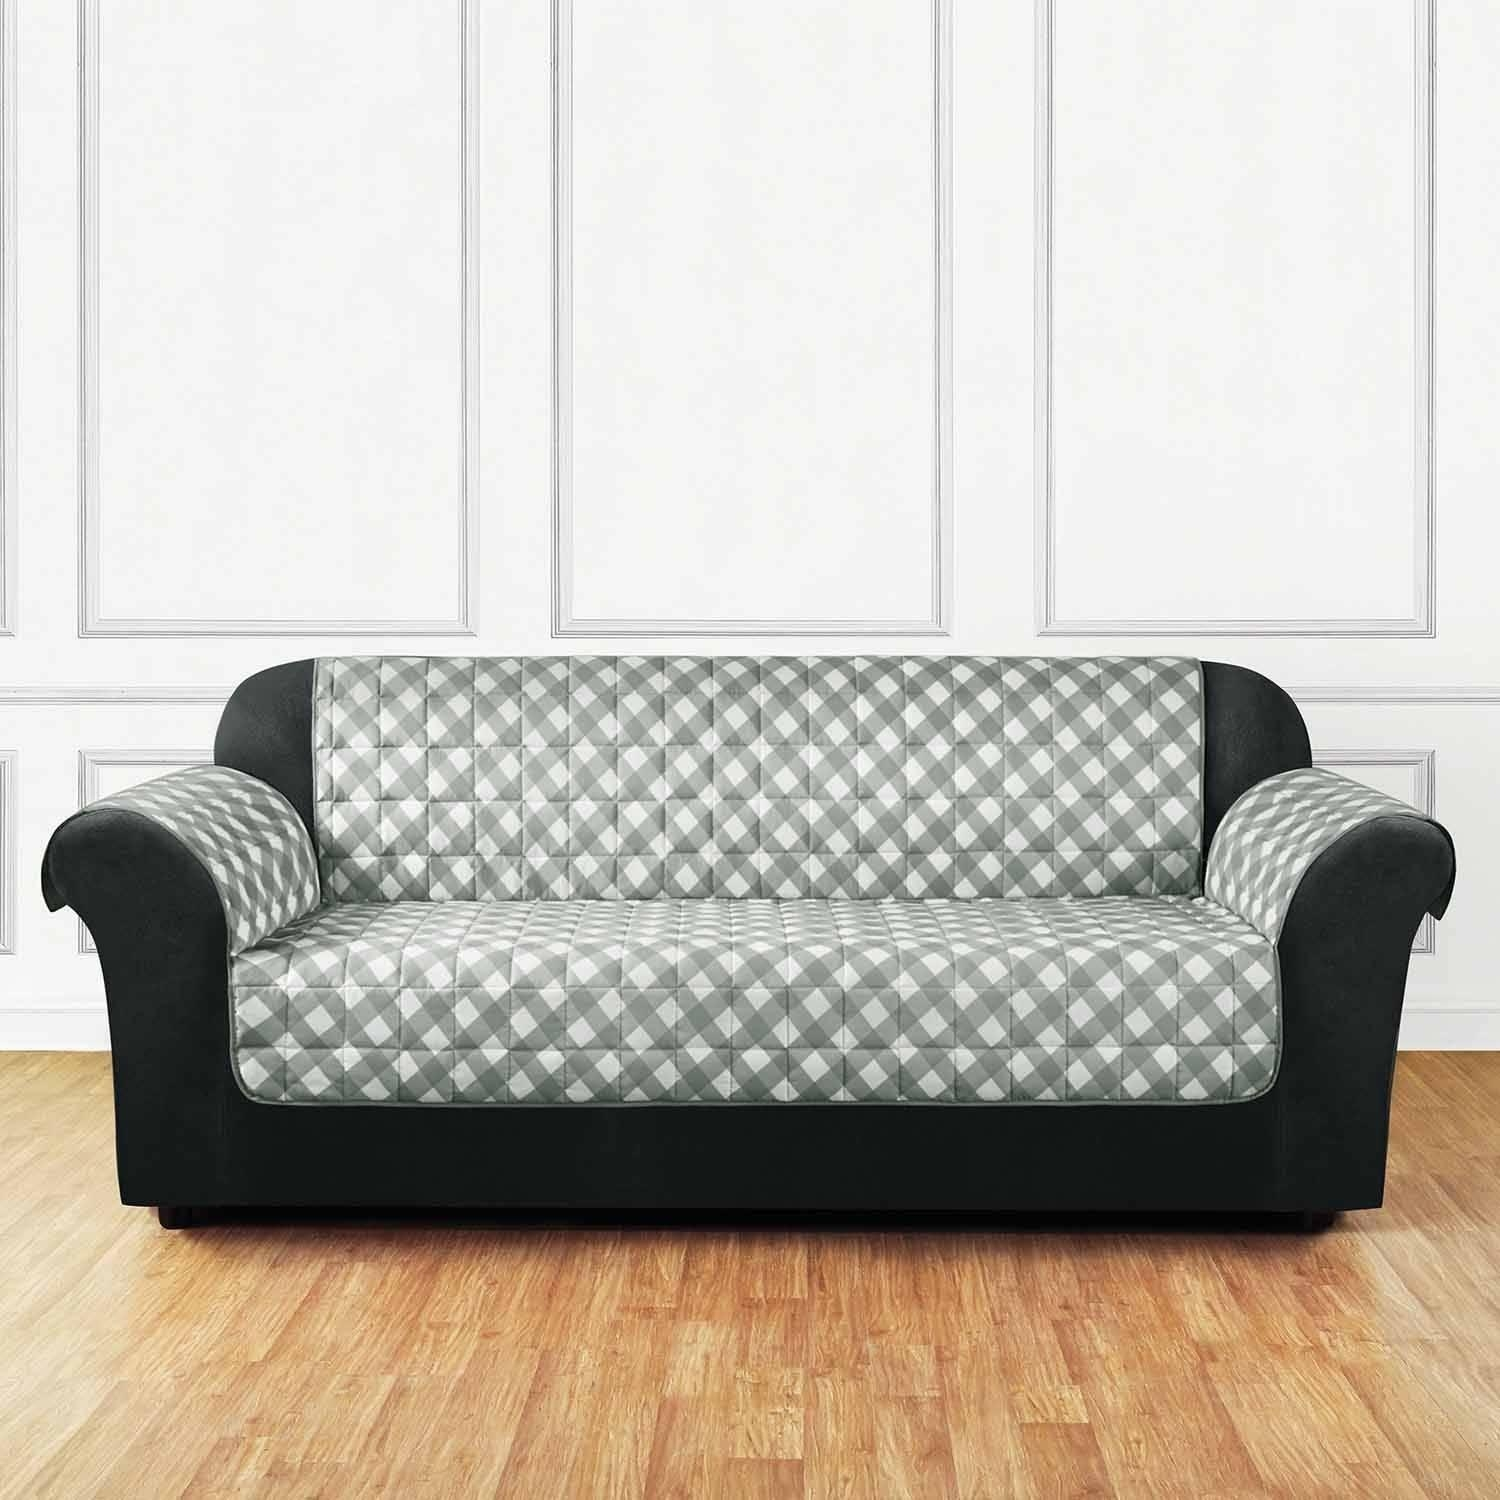 Gingham Sofa With Concept Photo 22417 | Kengire With Gingham Sofas (Image 14 of 20)